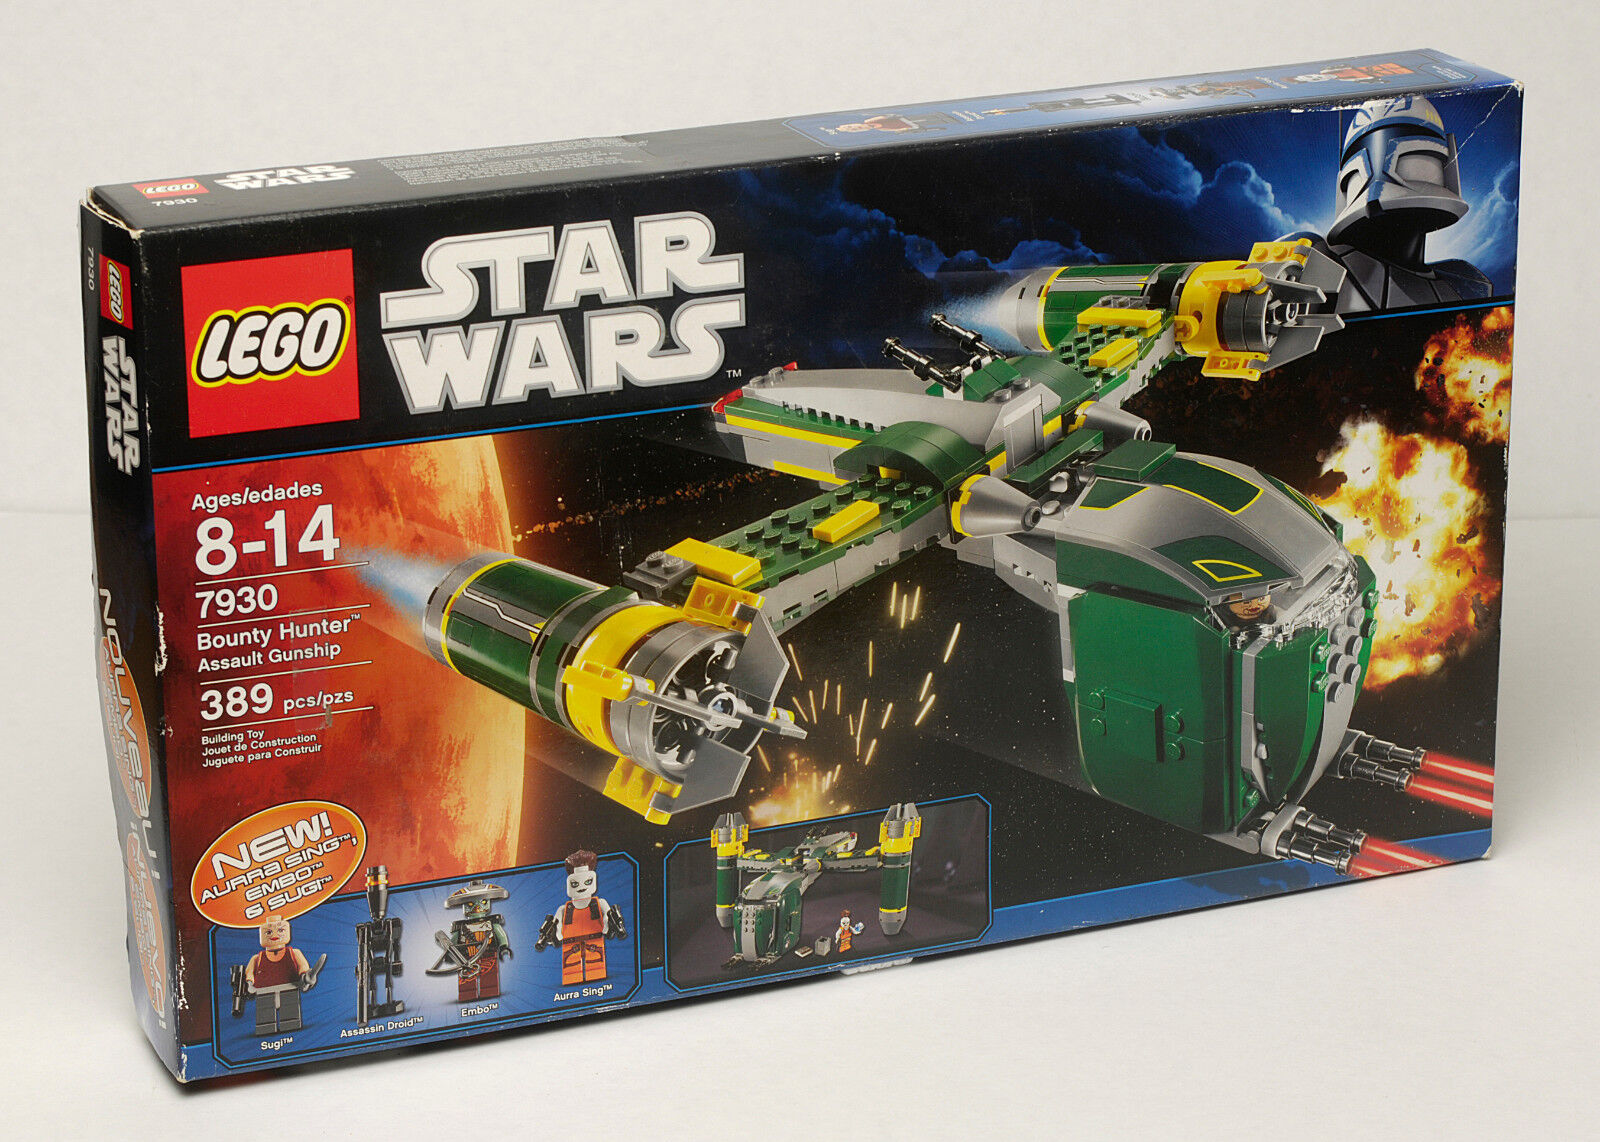 Lego Star Wars Set 7930 Bounty Hunter Assault Gunship  New in Box Retirouge